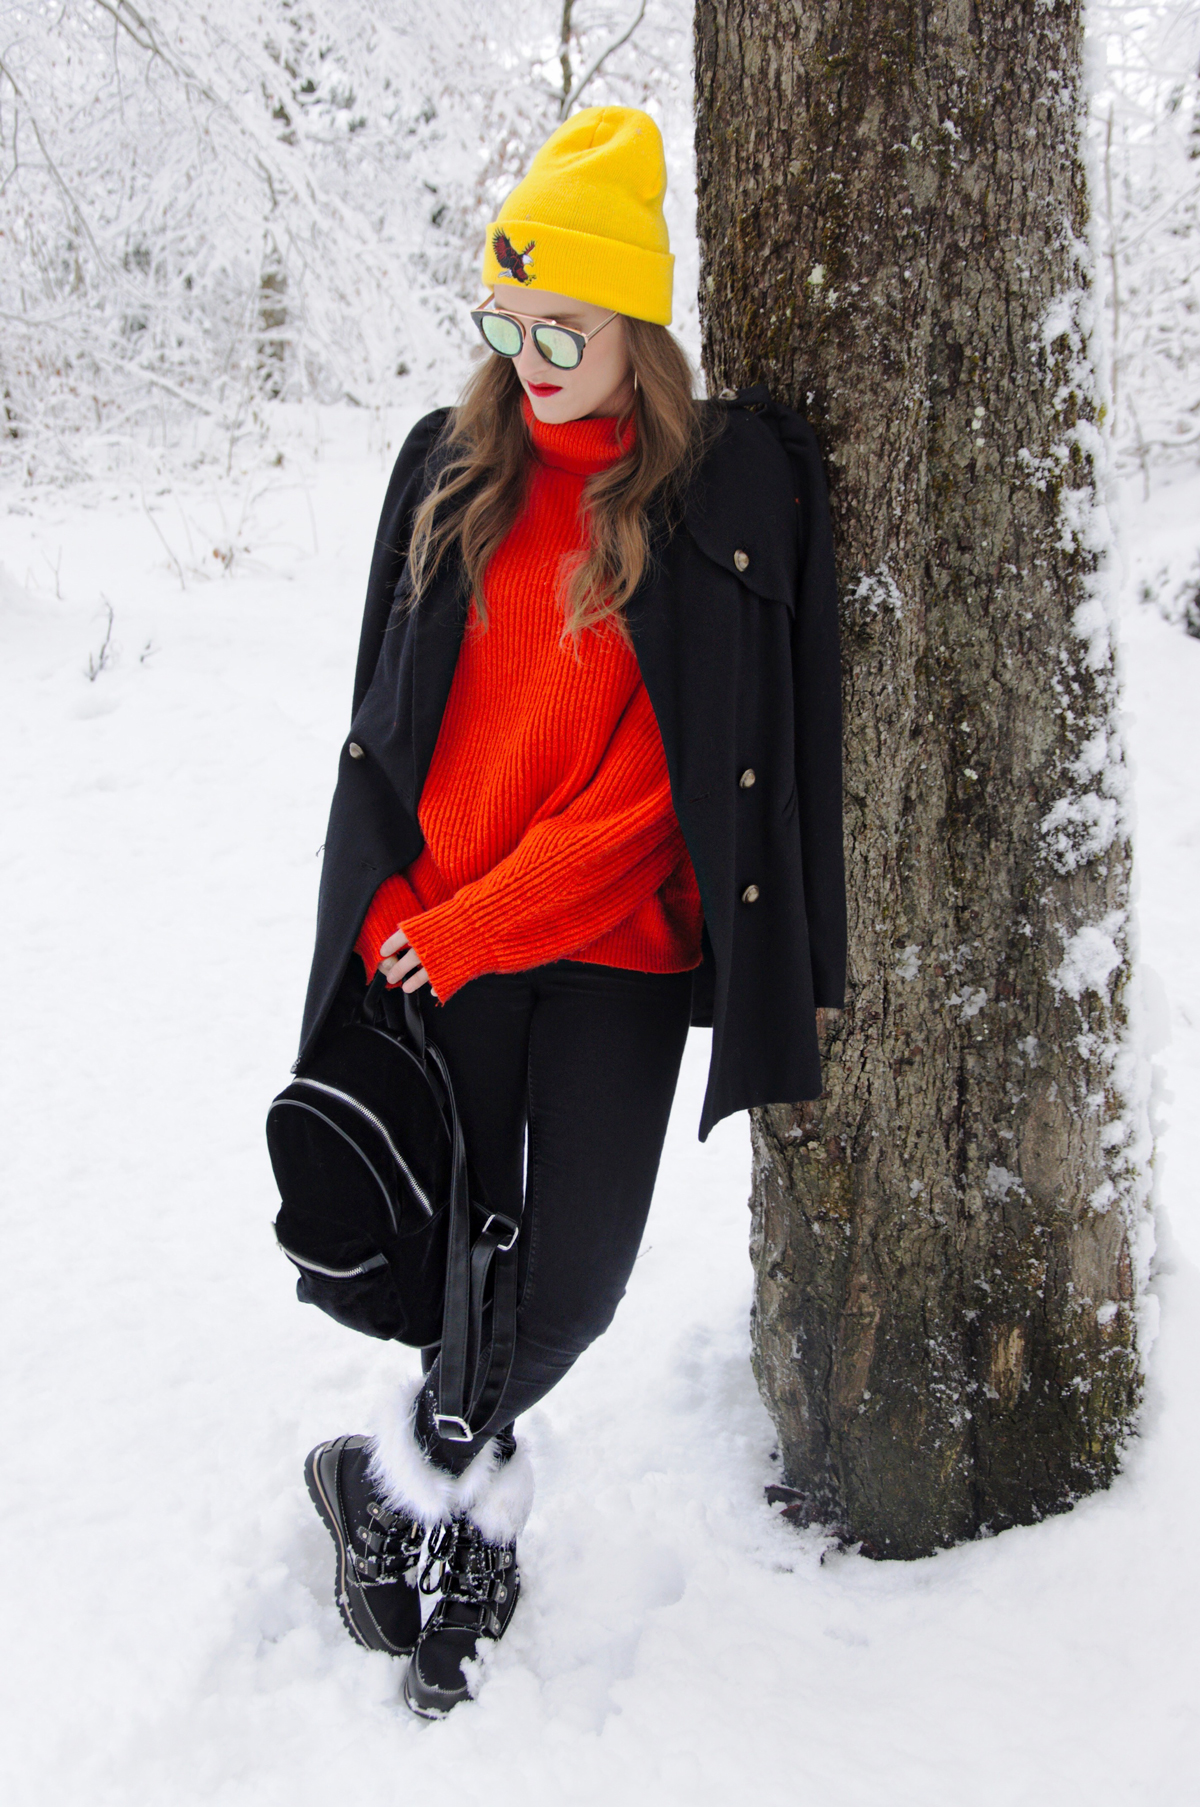 Fashion Blog Strawberries n Champagne by Andrea Steiner from Switzerland wear a cool Streetstyle Outfit with Sorel Boots.